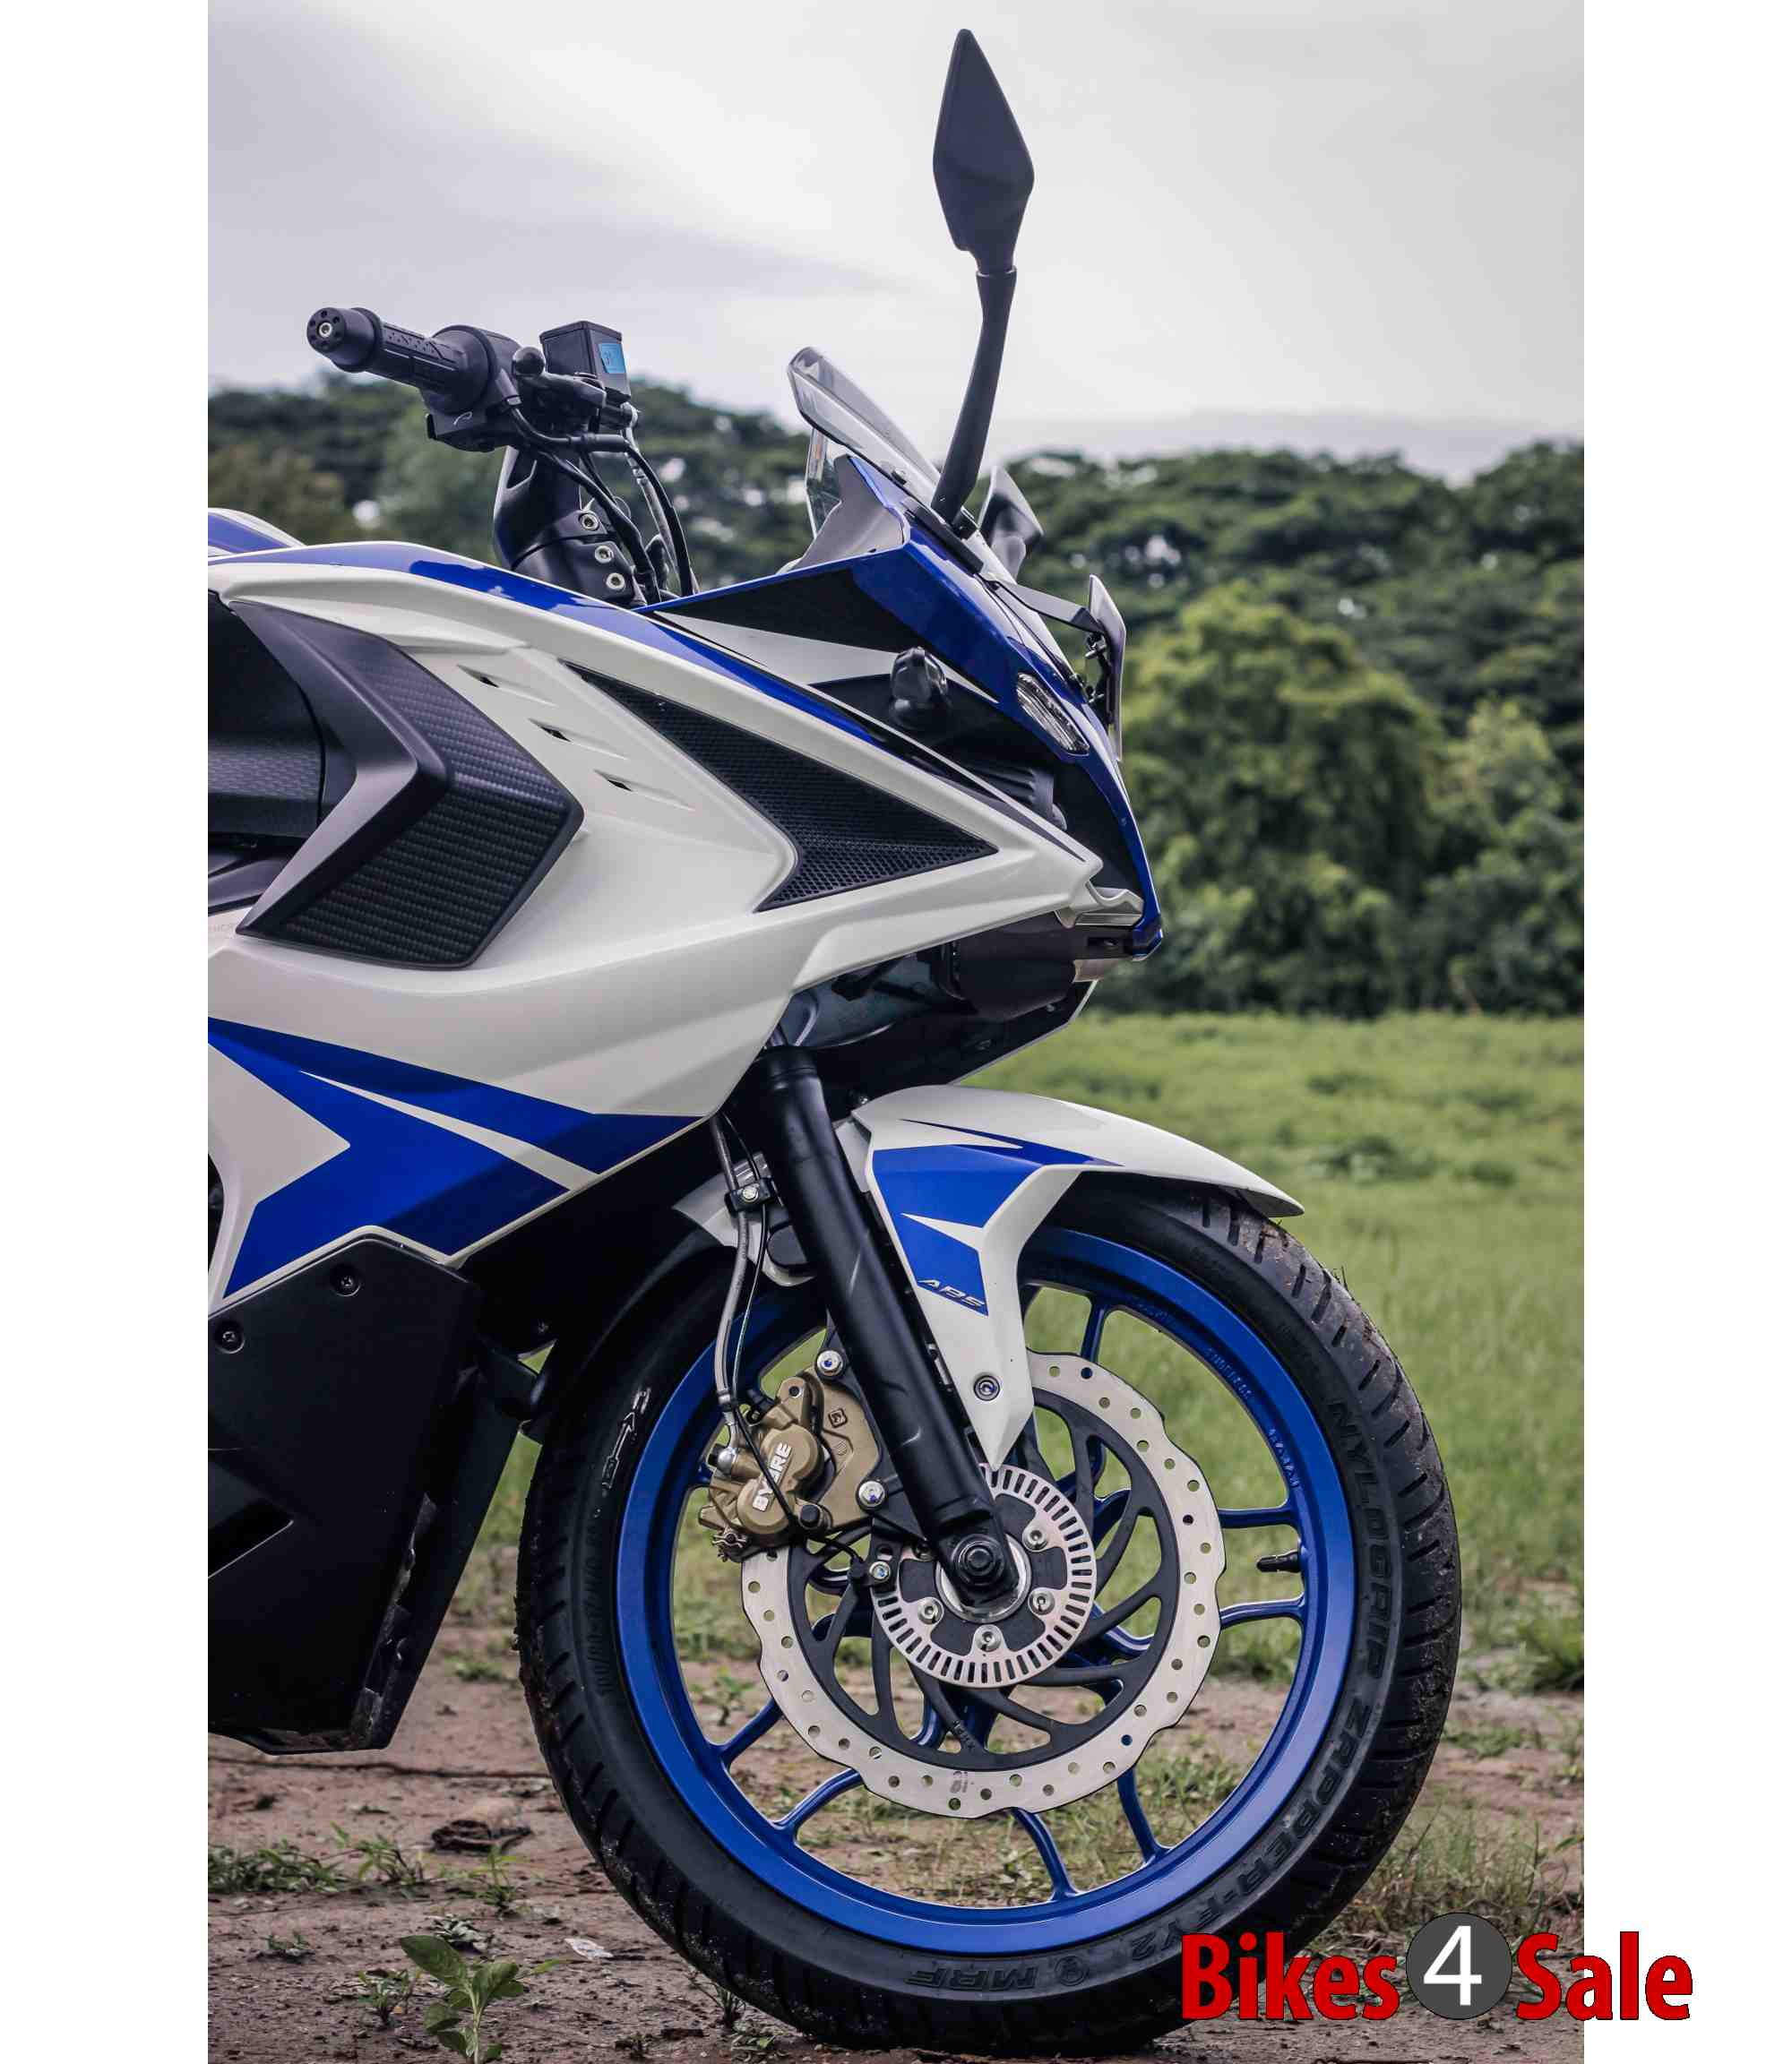 Bajaj Pulsar Rs 200 Front Fender and ABS